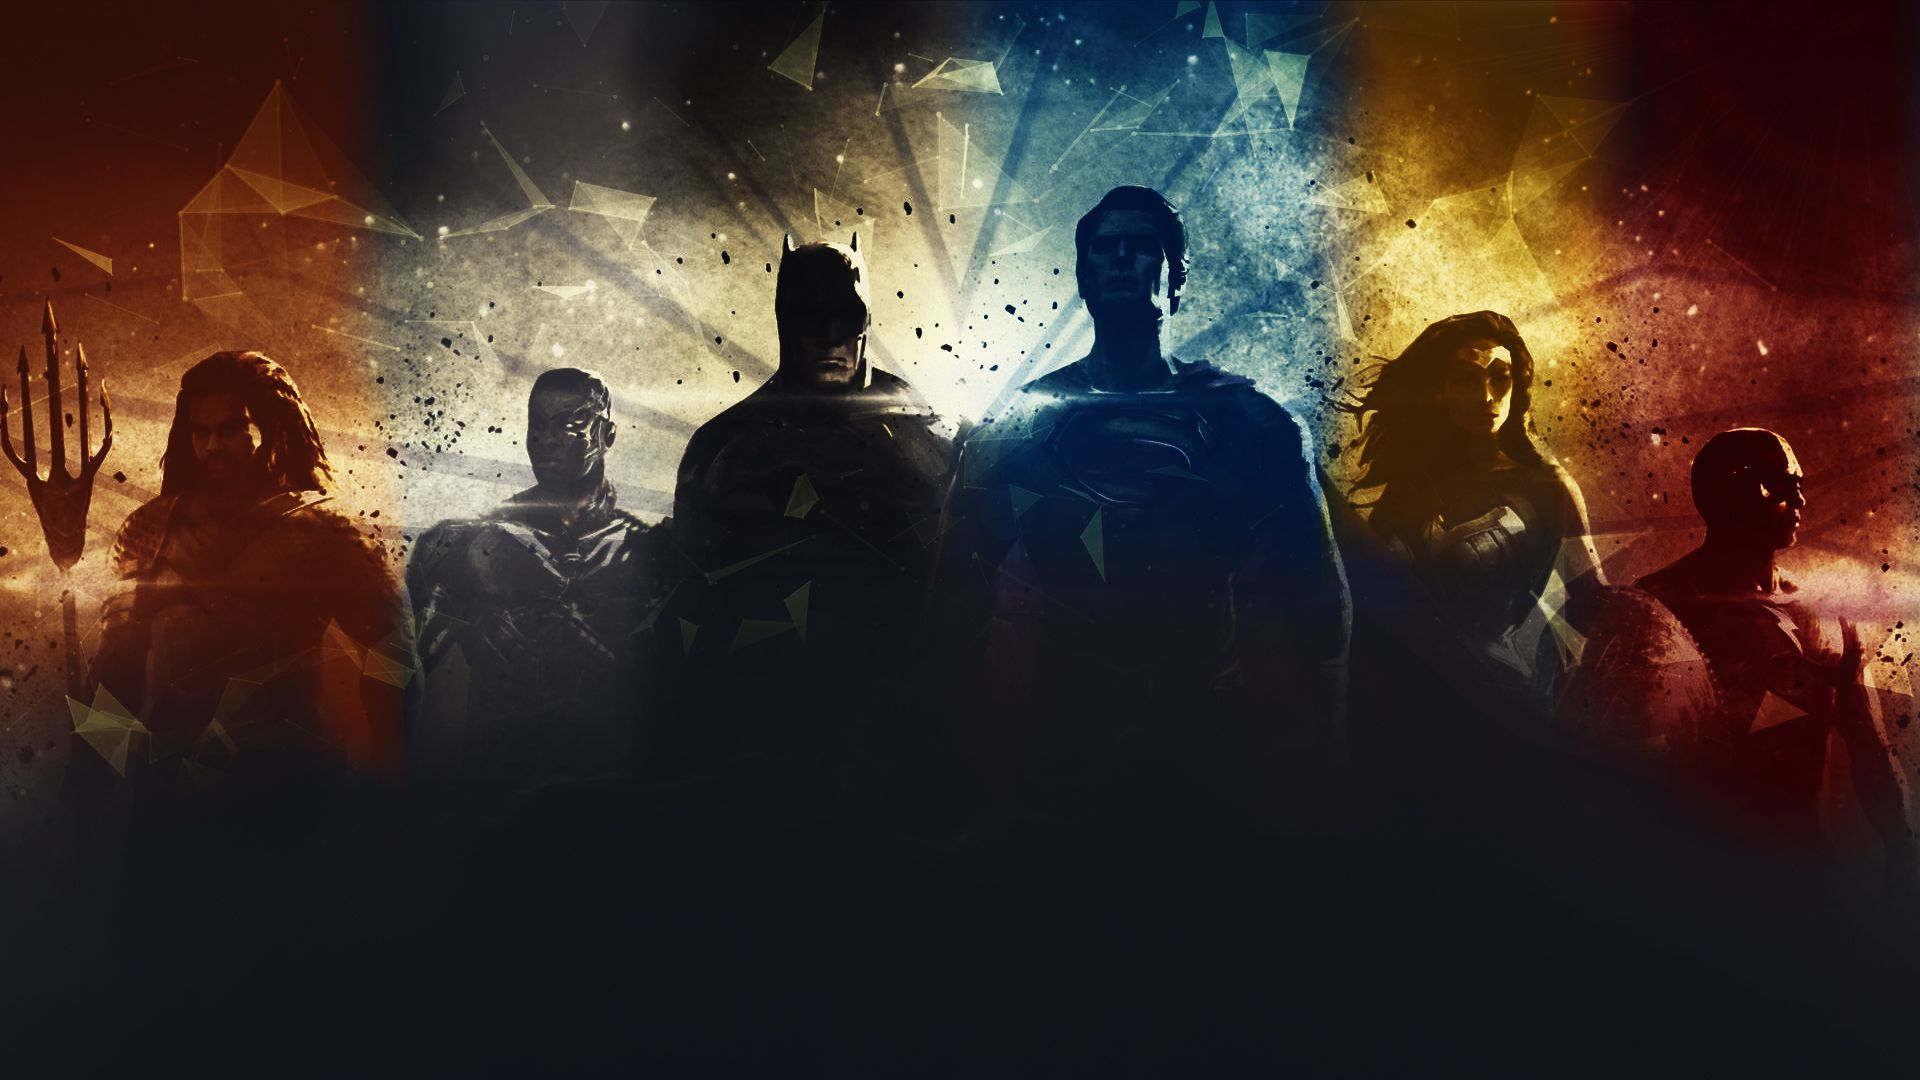 Hd wallpaper justice league -  Hd Justice League Wallpapers Justice League Widescreen